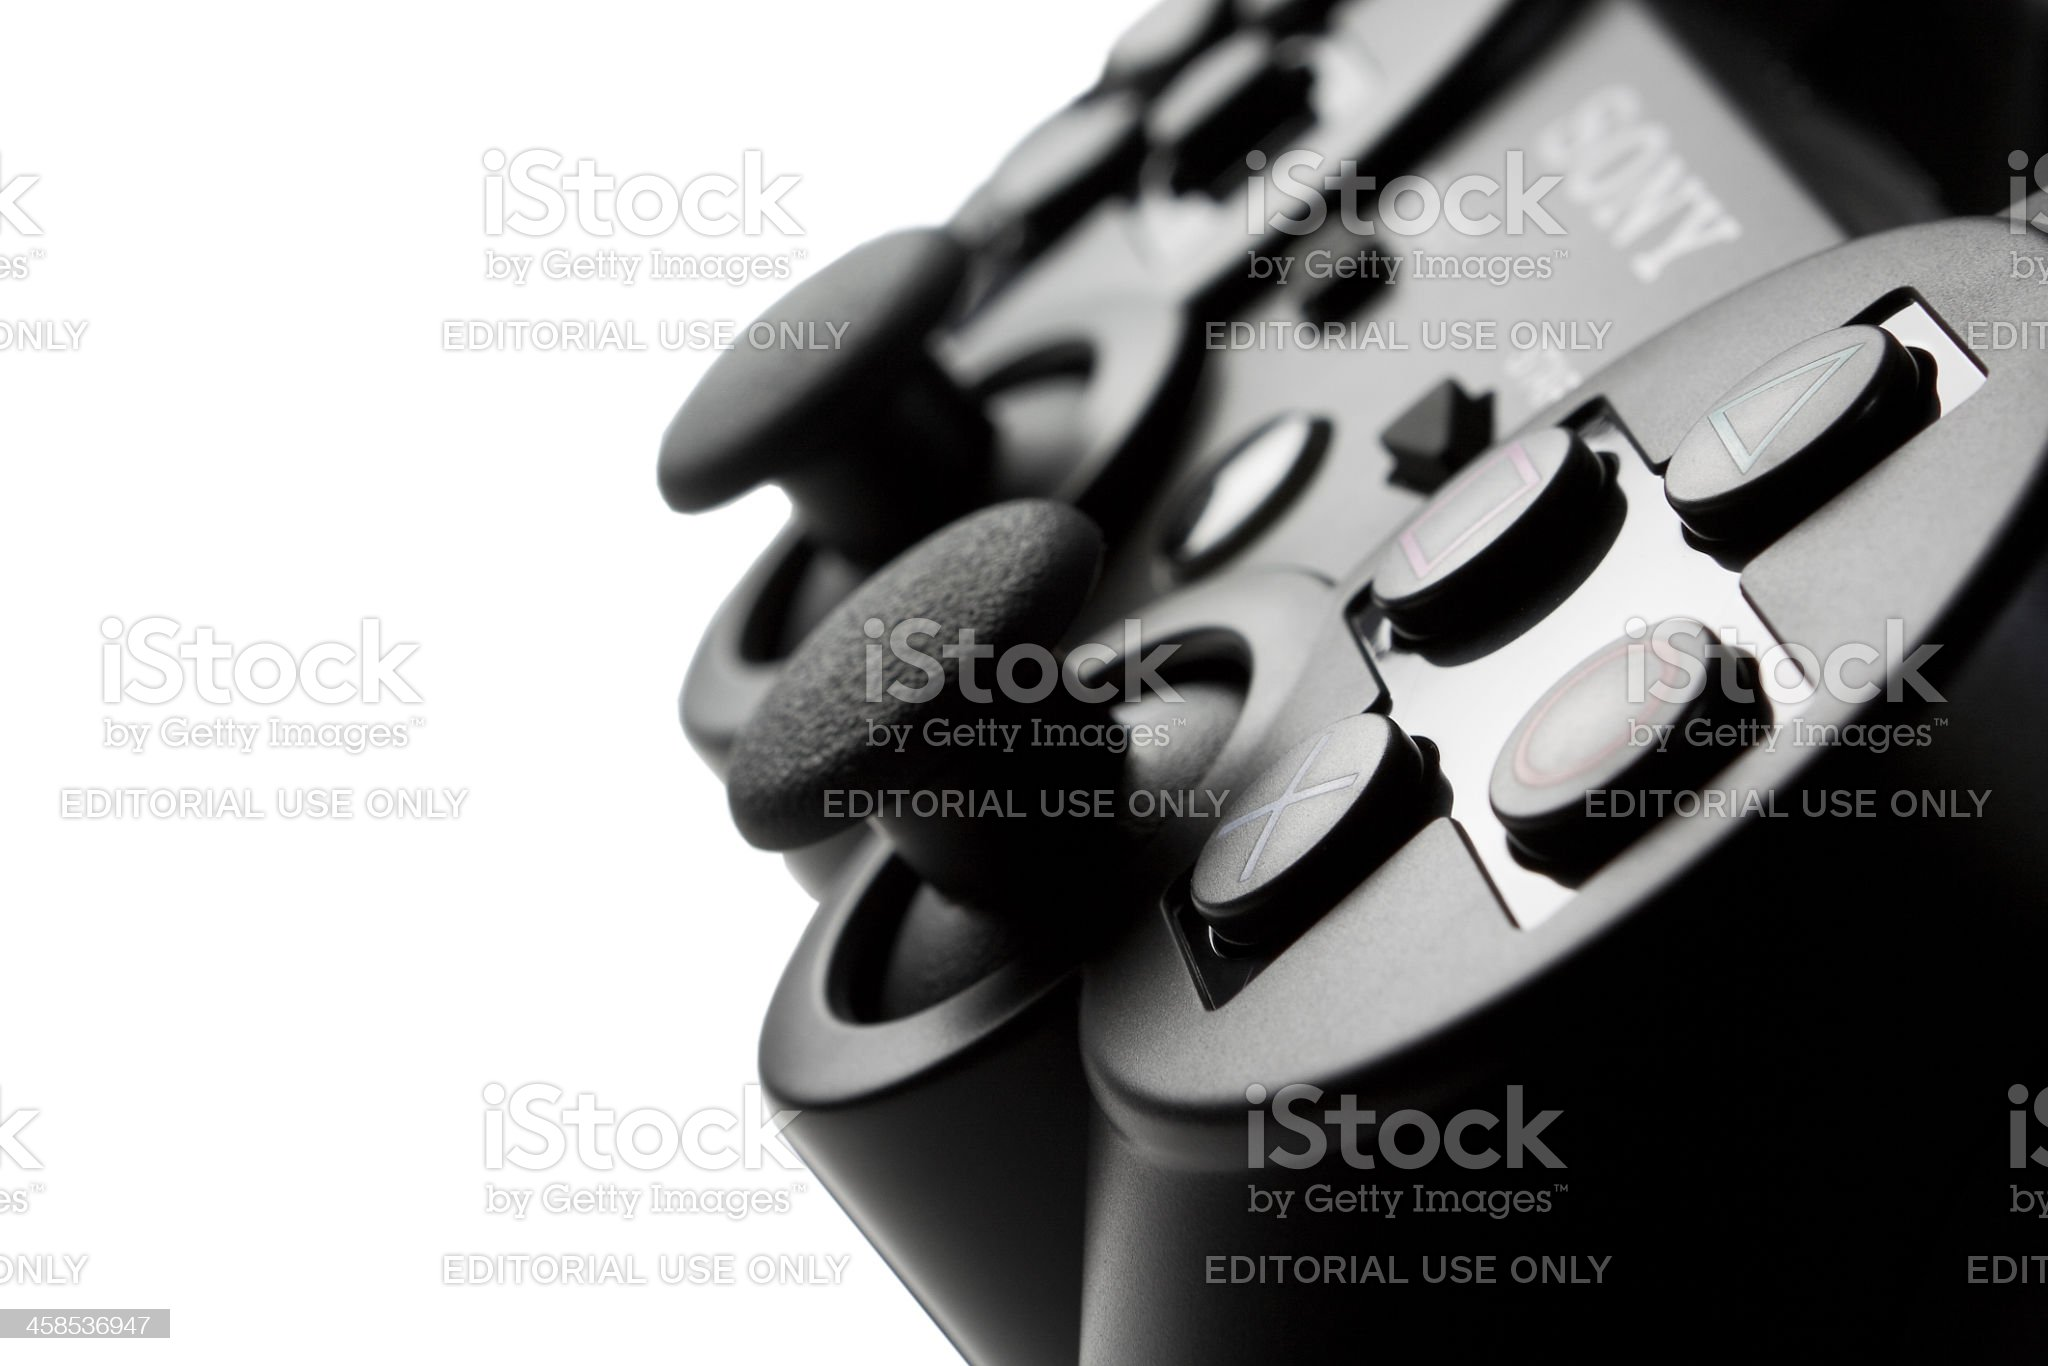 PS3 Dual Shock Controller royalty-free stock photo